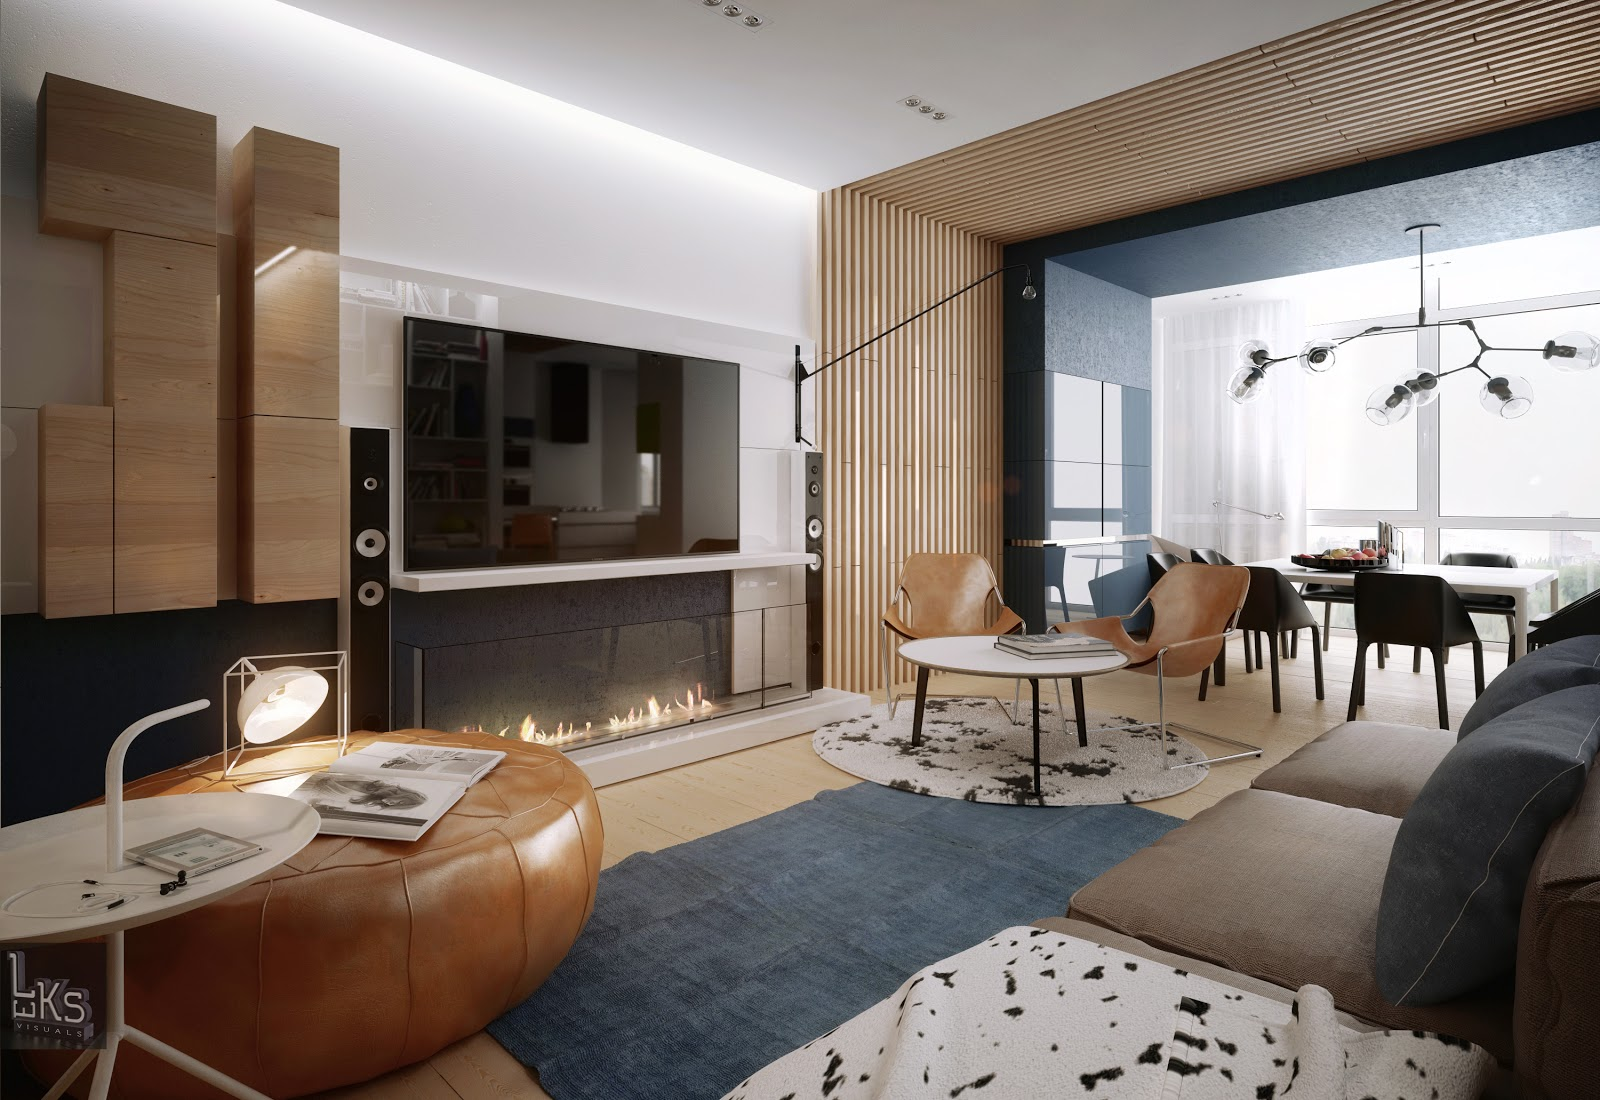 unique-modern-apartment-furniture-image-concept-cool-apartments-ultra-write